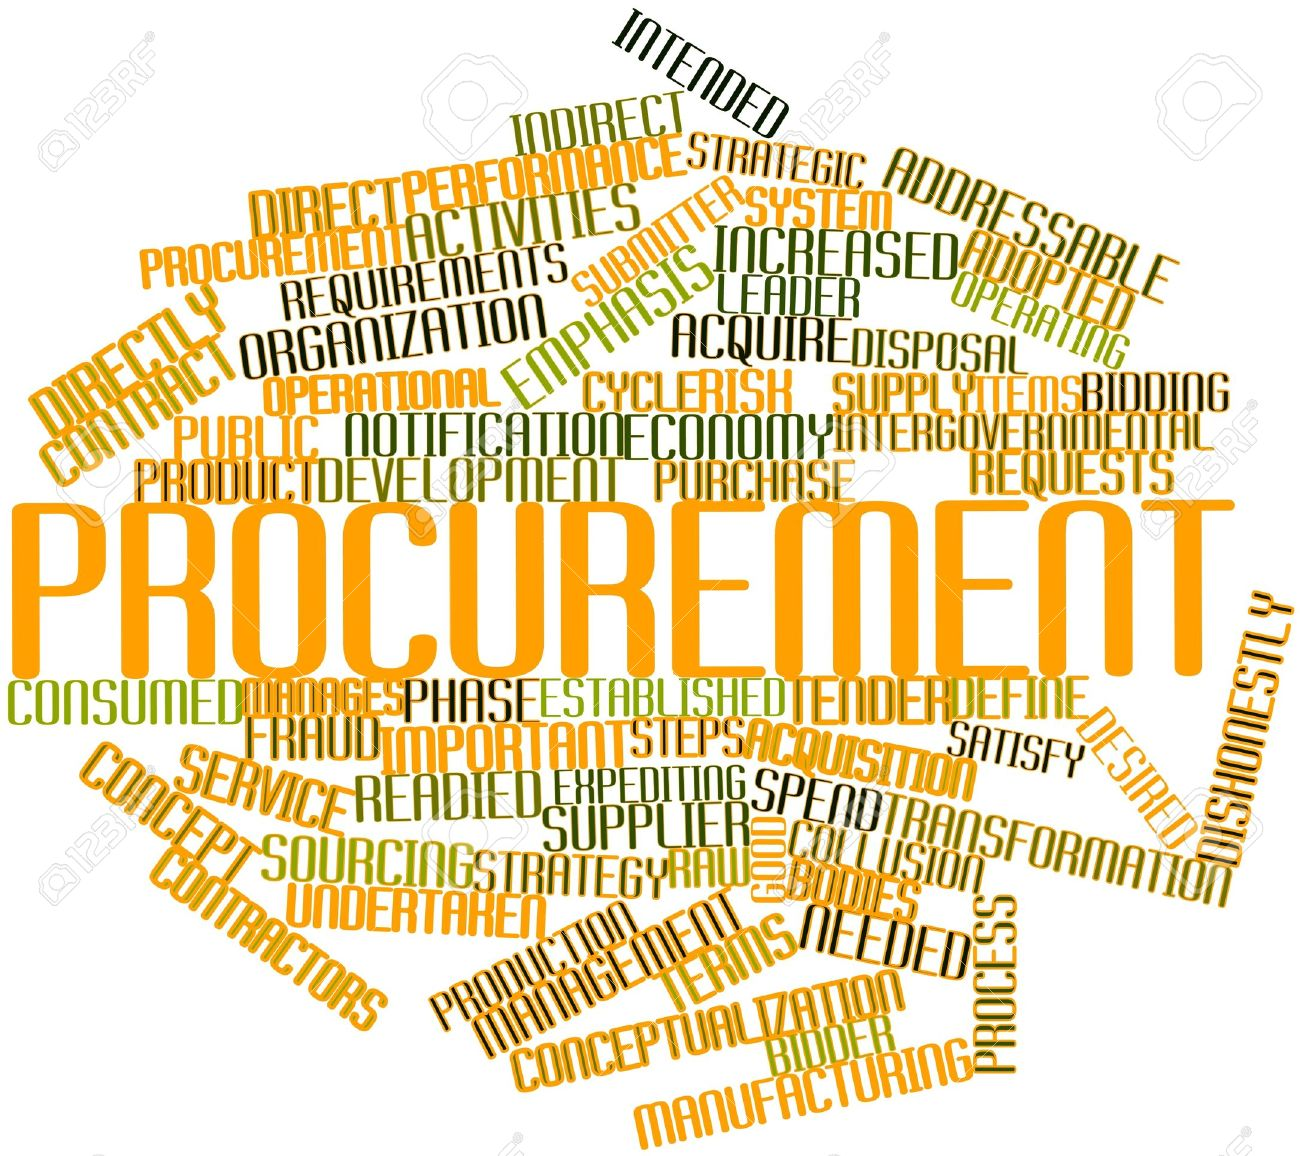 Abstract Word Cloud For Procurement With Related Tags And Terms.